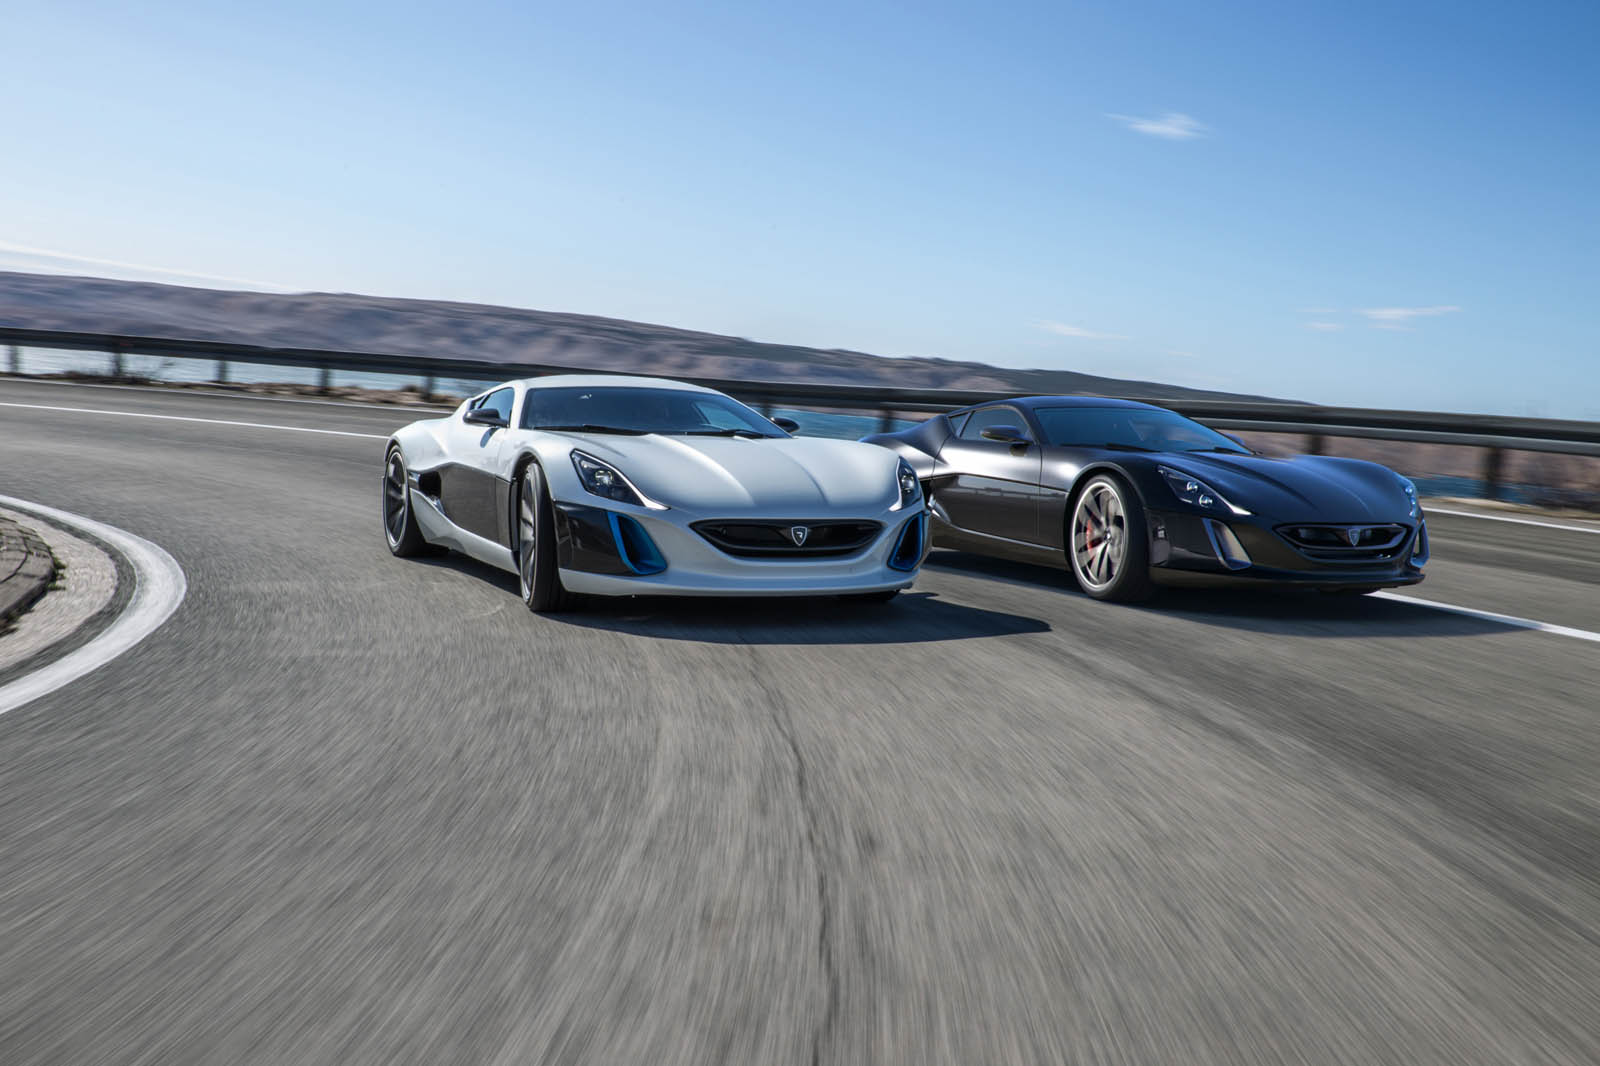 Rimac Concept_One in Geneva 2017 (9)